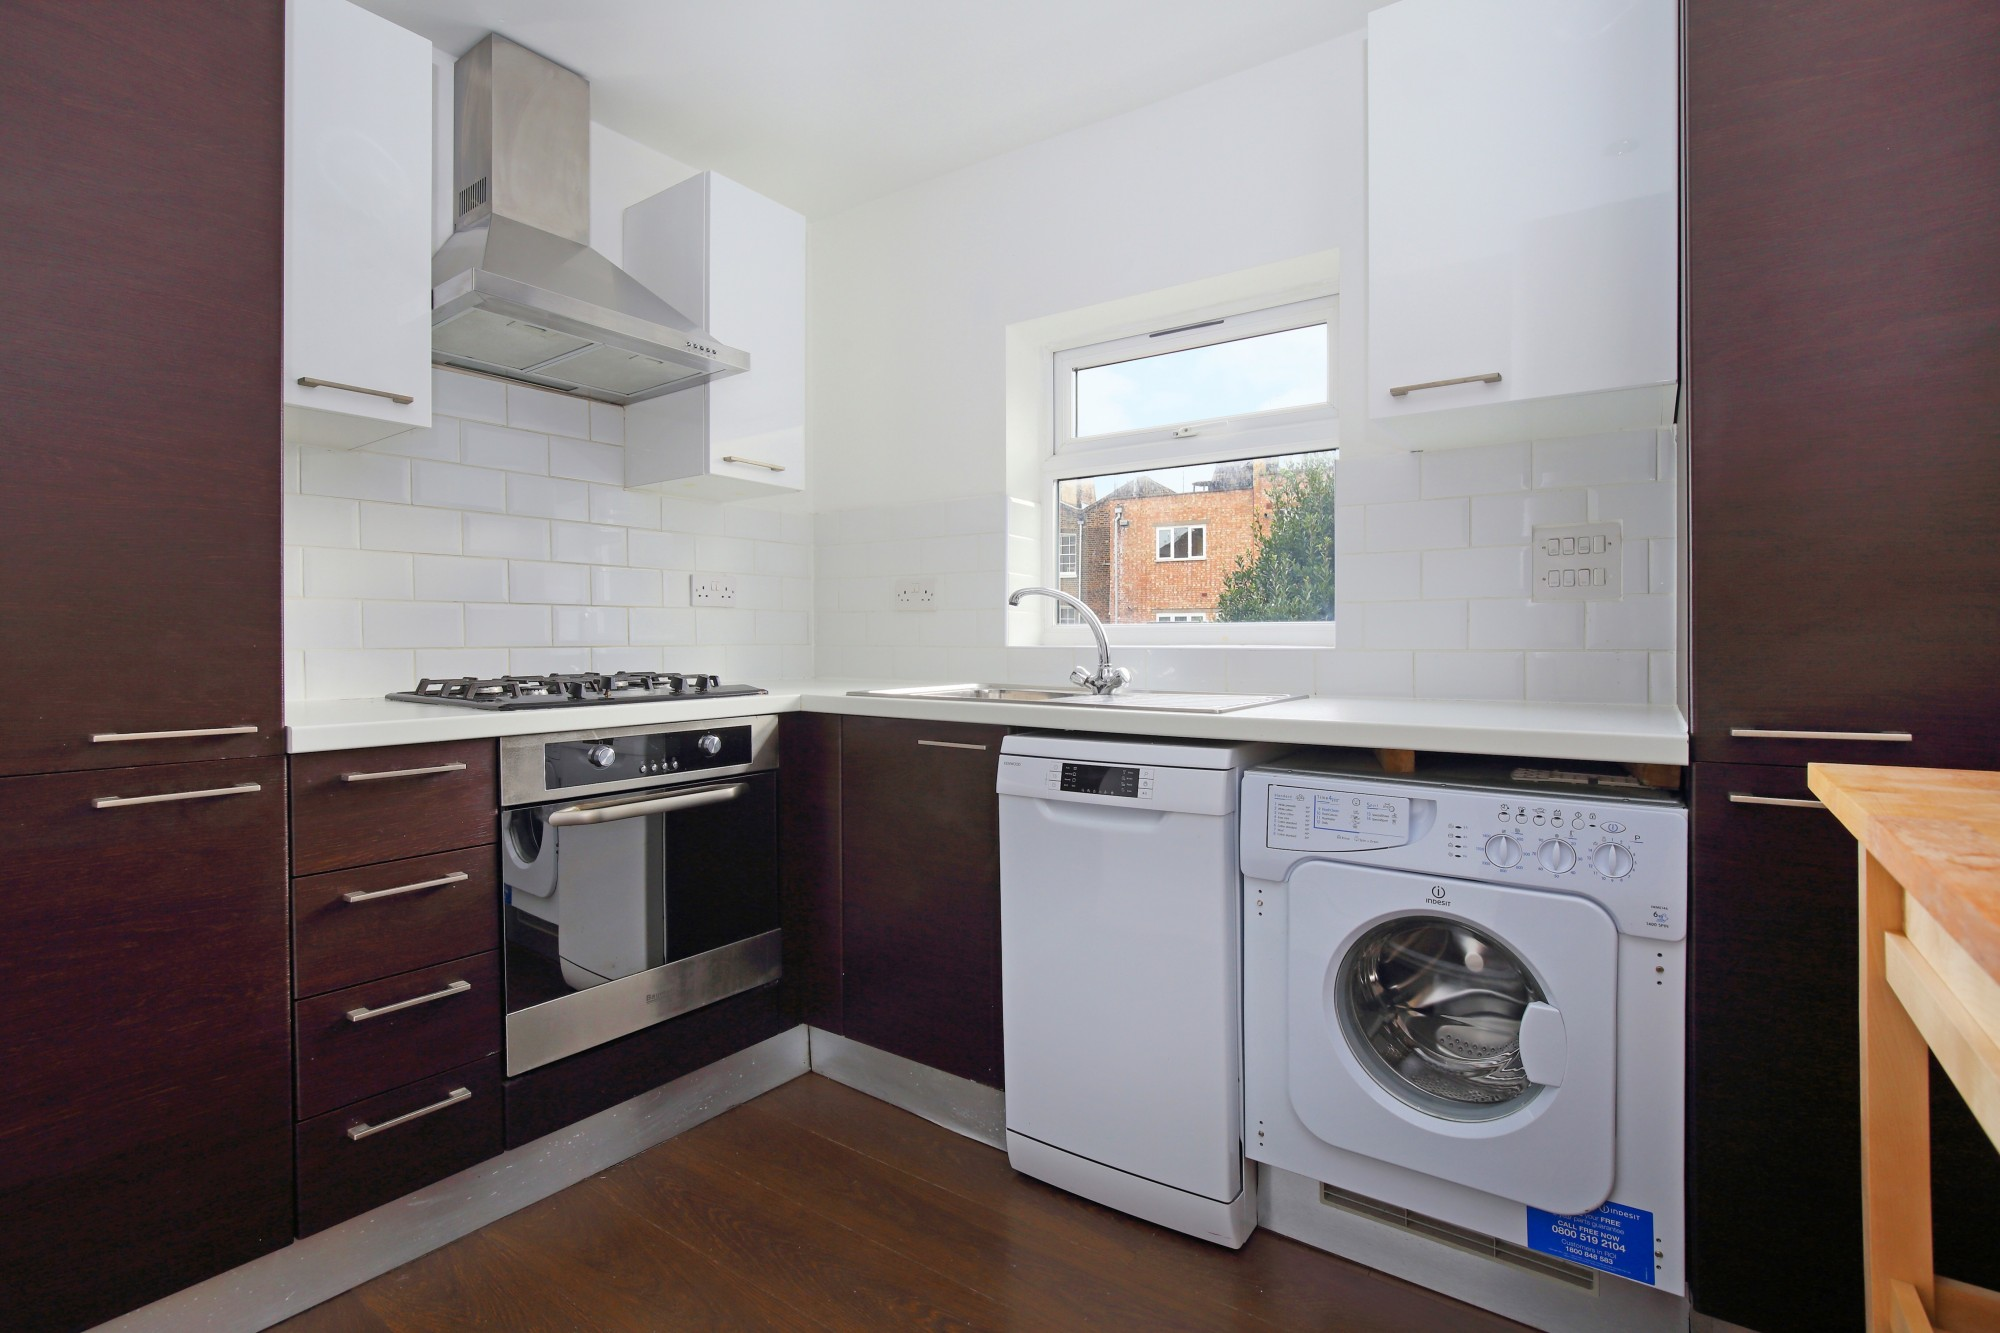 Images for Windsor Road, Holloway, London EAID:931013c273837aec744cf2e7889cb460 BID:2